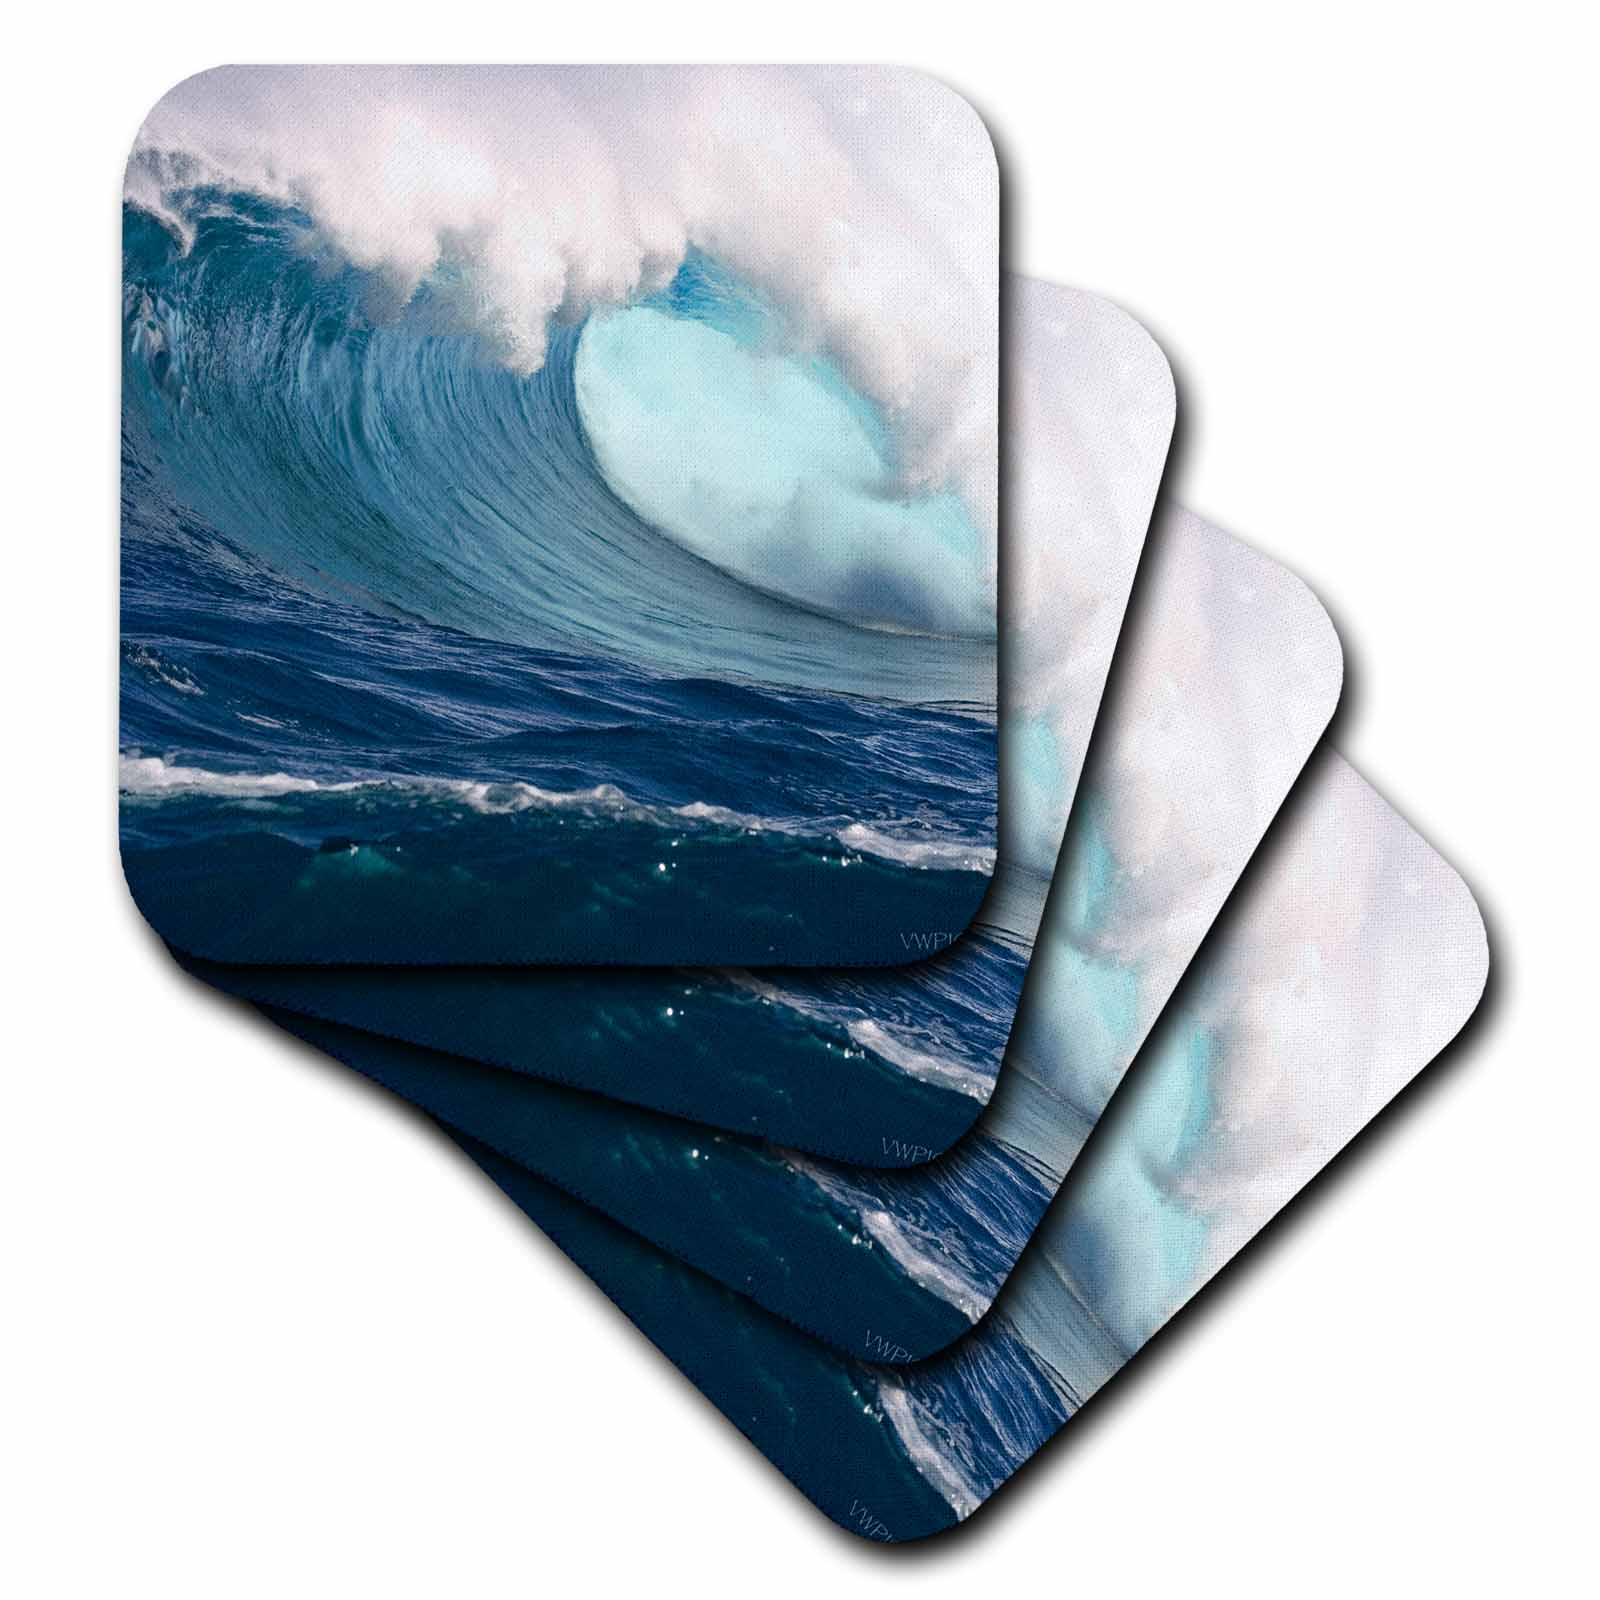 3dRose 60 foot surf crashes on Mauis Northshore at Peahi (Jaws), Soft Coasters, set of 4